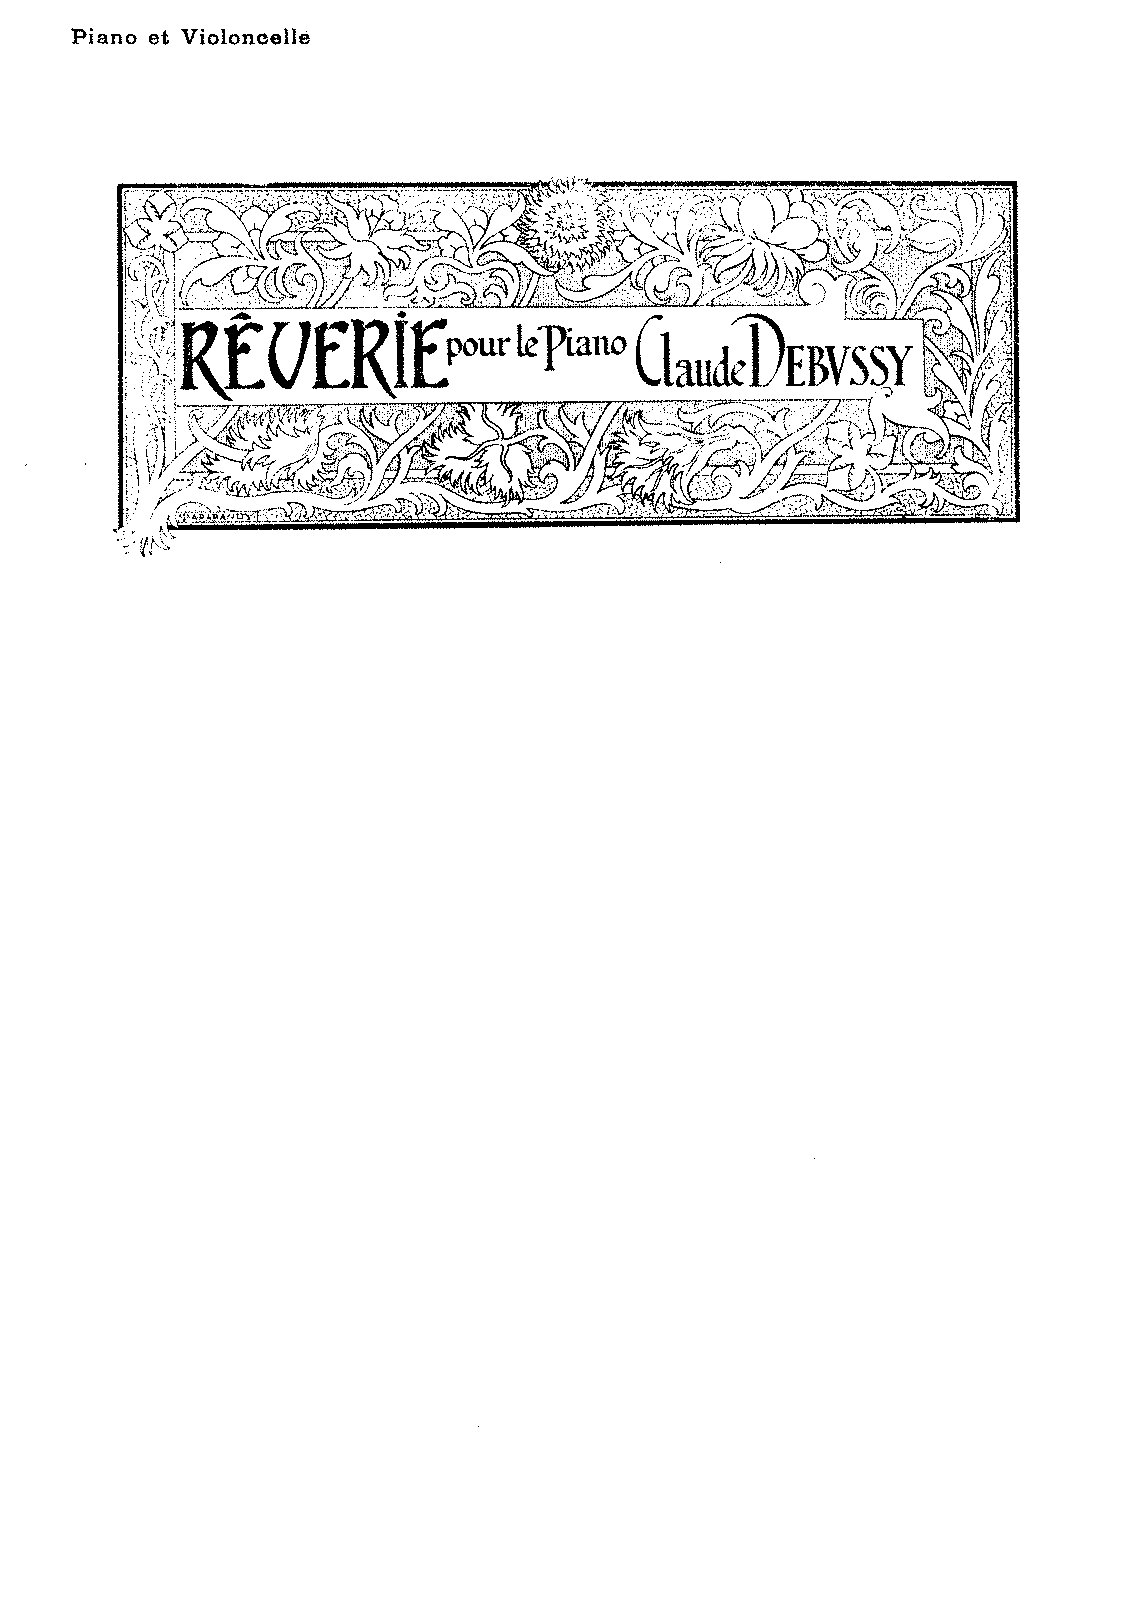 PMLP02404-Debussy - Reverie for cello and piano.pdf